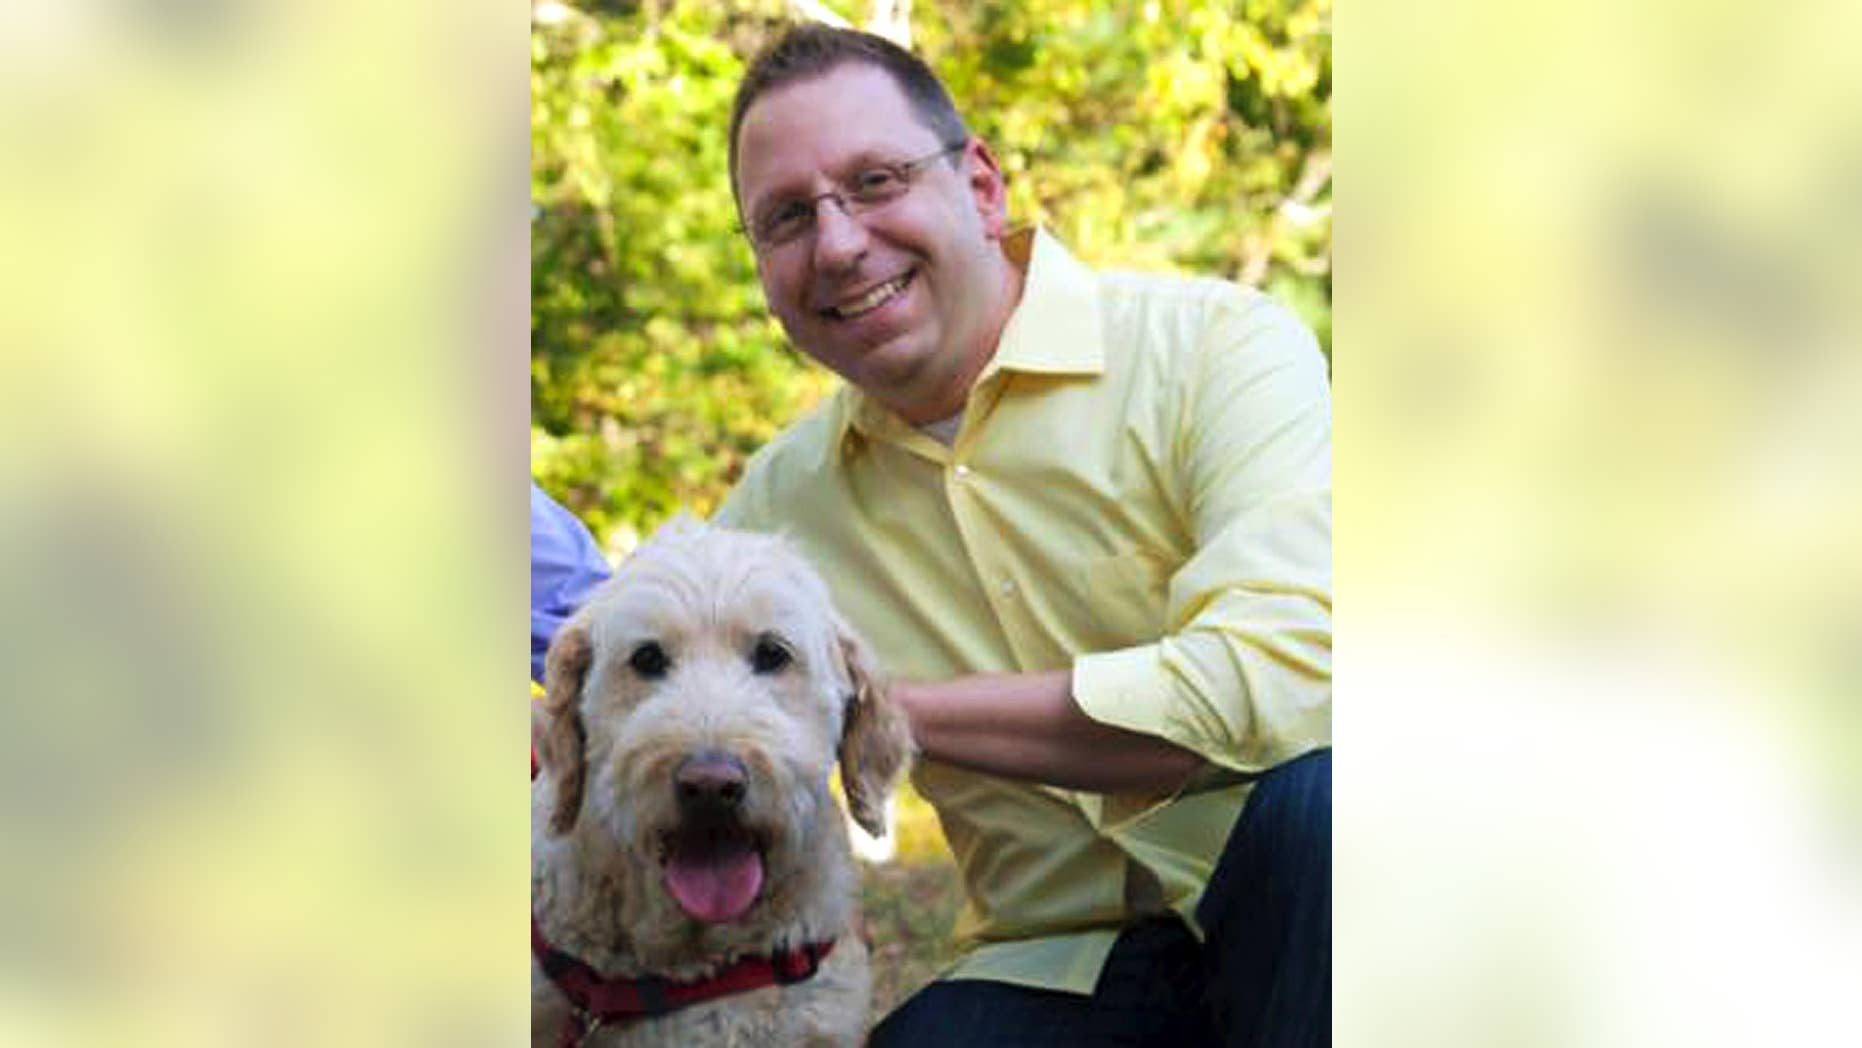 """In this Sept. 2015 photo provided by Erin X. Smithers, Michael Templeton poses with his dog in Lincoln, R.I. Templeton, 38, said he was fired from his job as music director at the Church of St. Mary in Providence, a post he held for five years, after marrying his same-sex partner. An ideological tug of war over his firing illustrates the confusion in some U.S. Roman Catholic parishes over Pope Francis' words on homosexuality. The pope's declaration """"Who am I to judge?"""" in 2013 energized Catholics who had pushed the church to accept gays and lesbians. Three years later, some gay Catholics and supporters who had hoped for rapid acceptance find themselves stymied by many bishops and pastors. (Erin X. Smithers via AP)"""